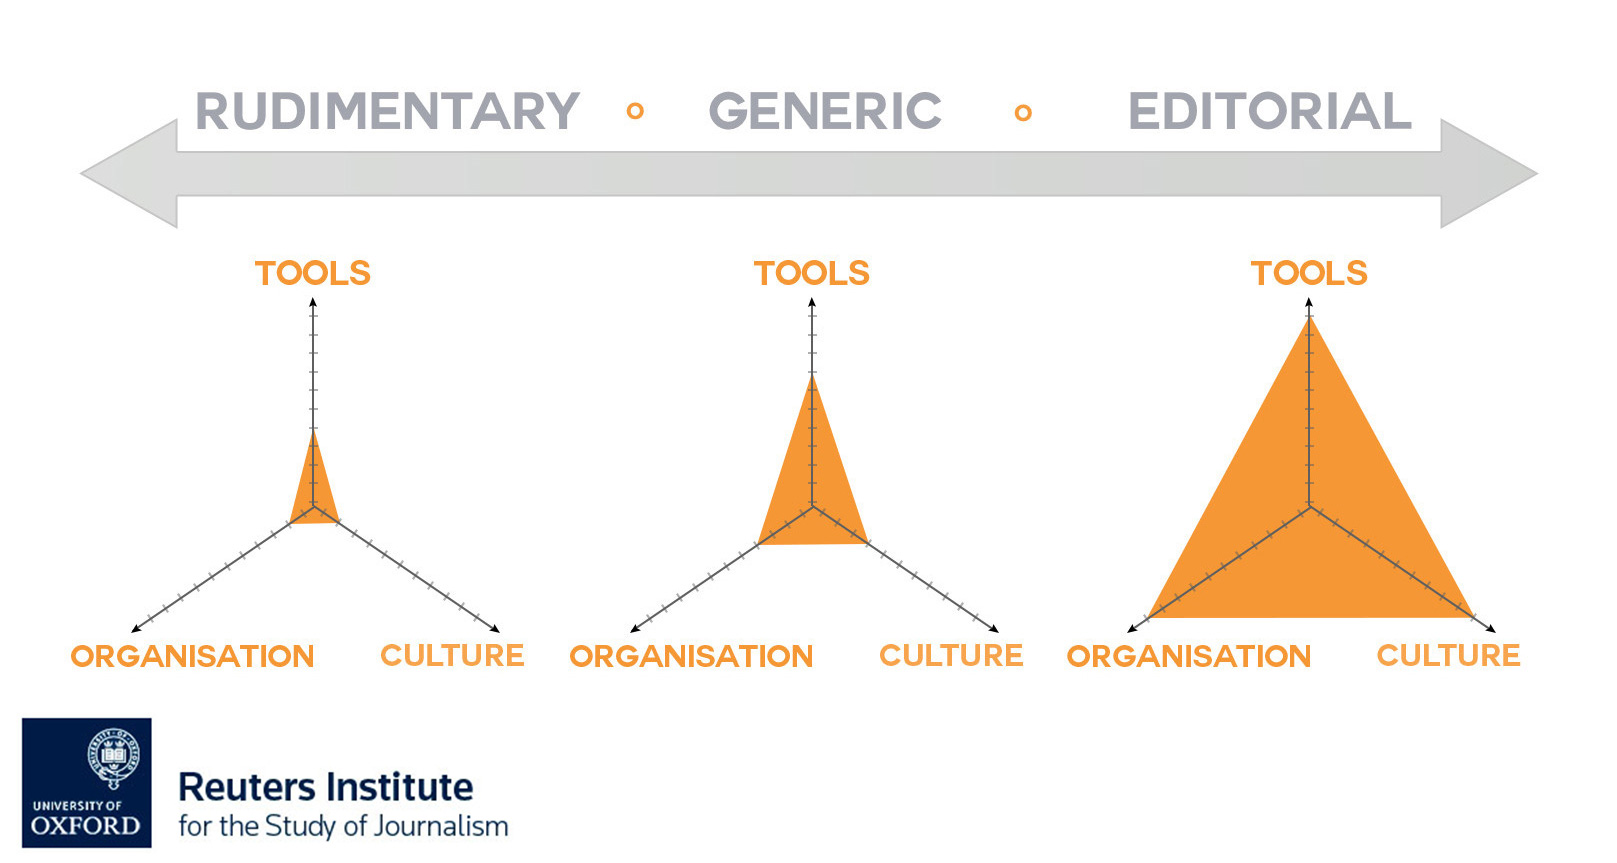 Figure 3.2. Analytics capability of organisations with editorial, generic, and rudimentary analytics and different levels of development in terms of tools, organisation, and culture.